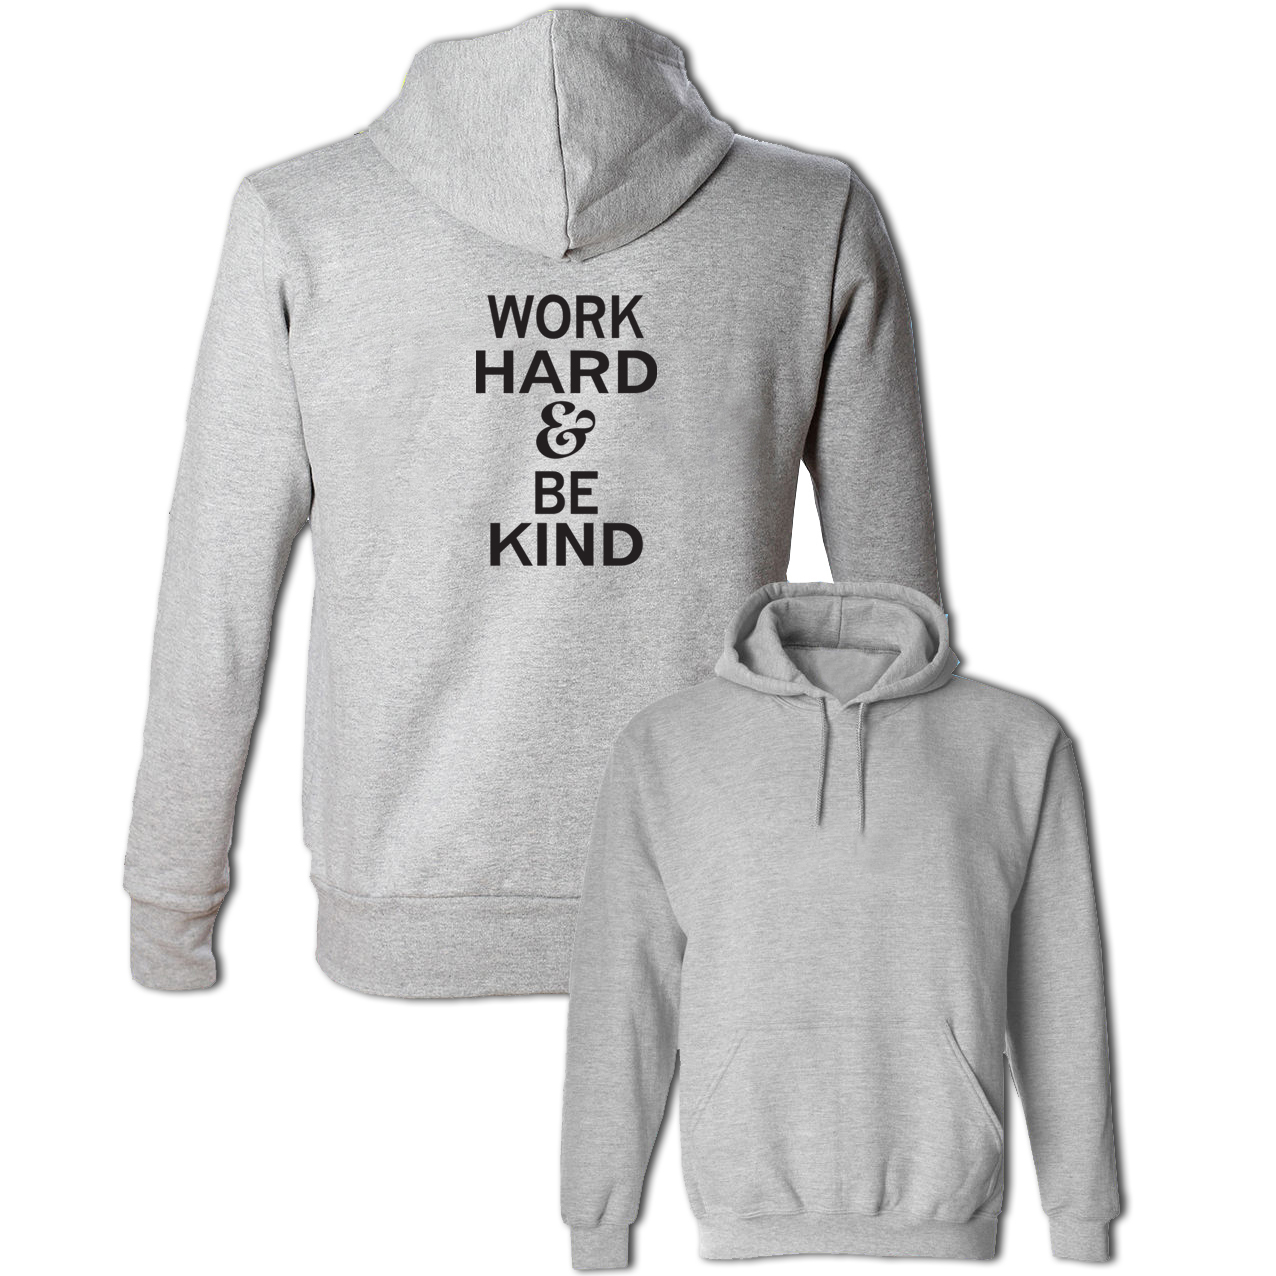 Work Hard & Be Kind Cotton Sweatshirts Women Men Lettering Pullovers Spring Autumn Casual Hoodies For Girl Lady Cool Streetwear